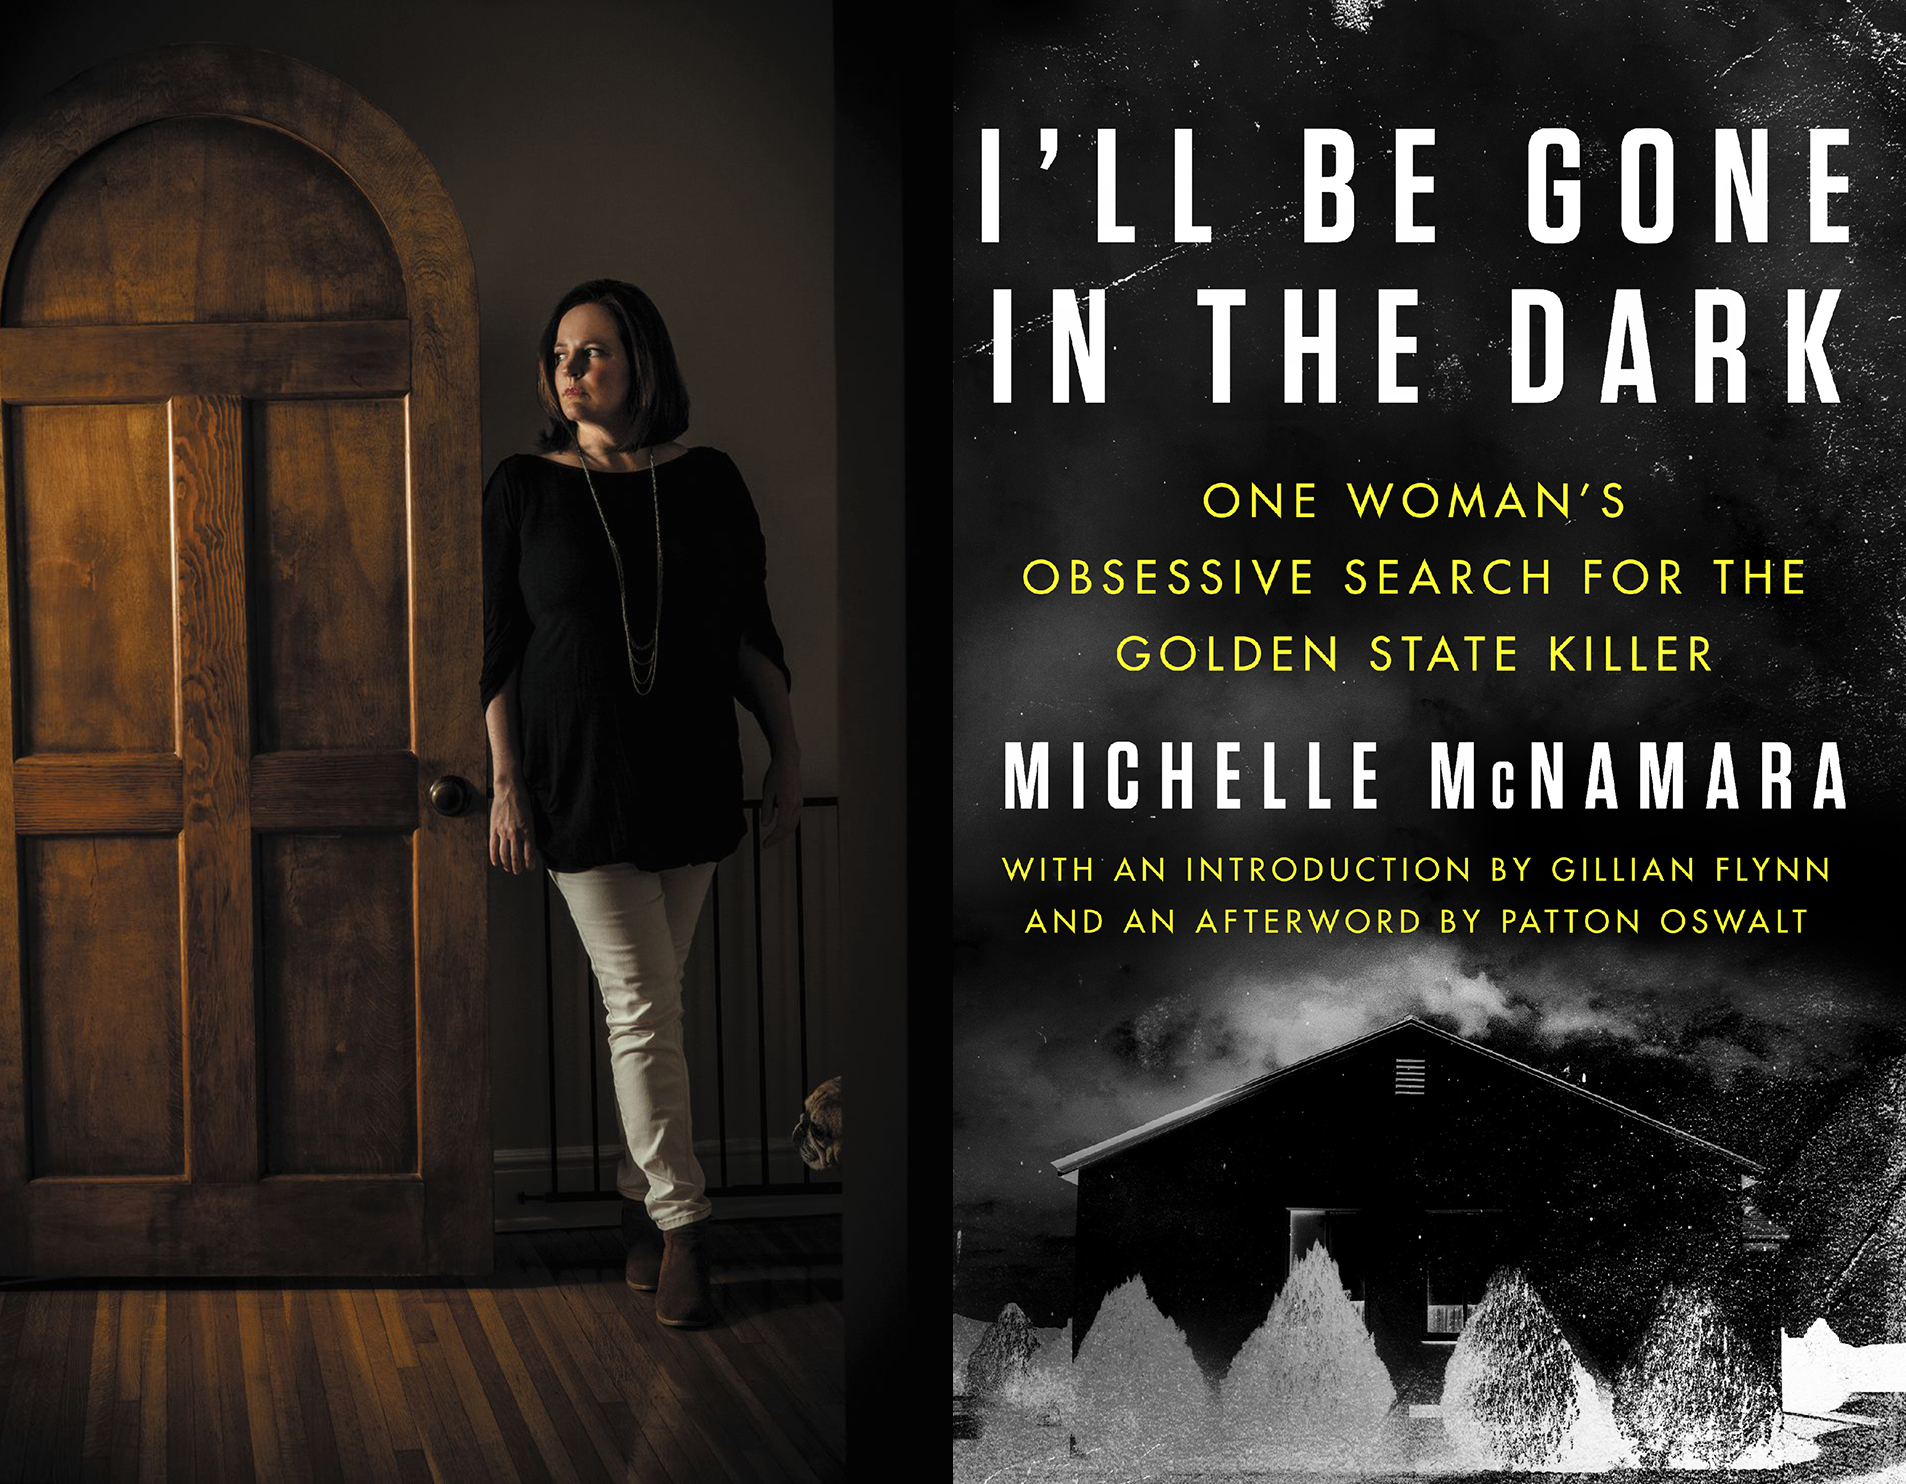 What Happened To Michelle McNamara, Who Tragically Died Investigating The Golden State Killer? | Oxygen Official Site